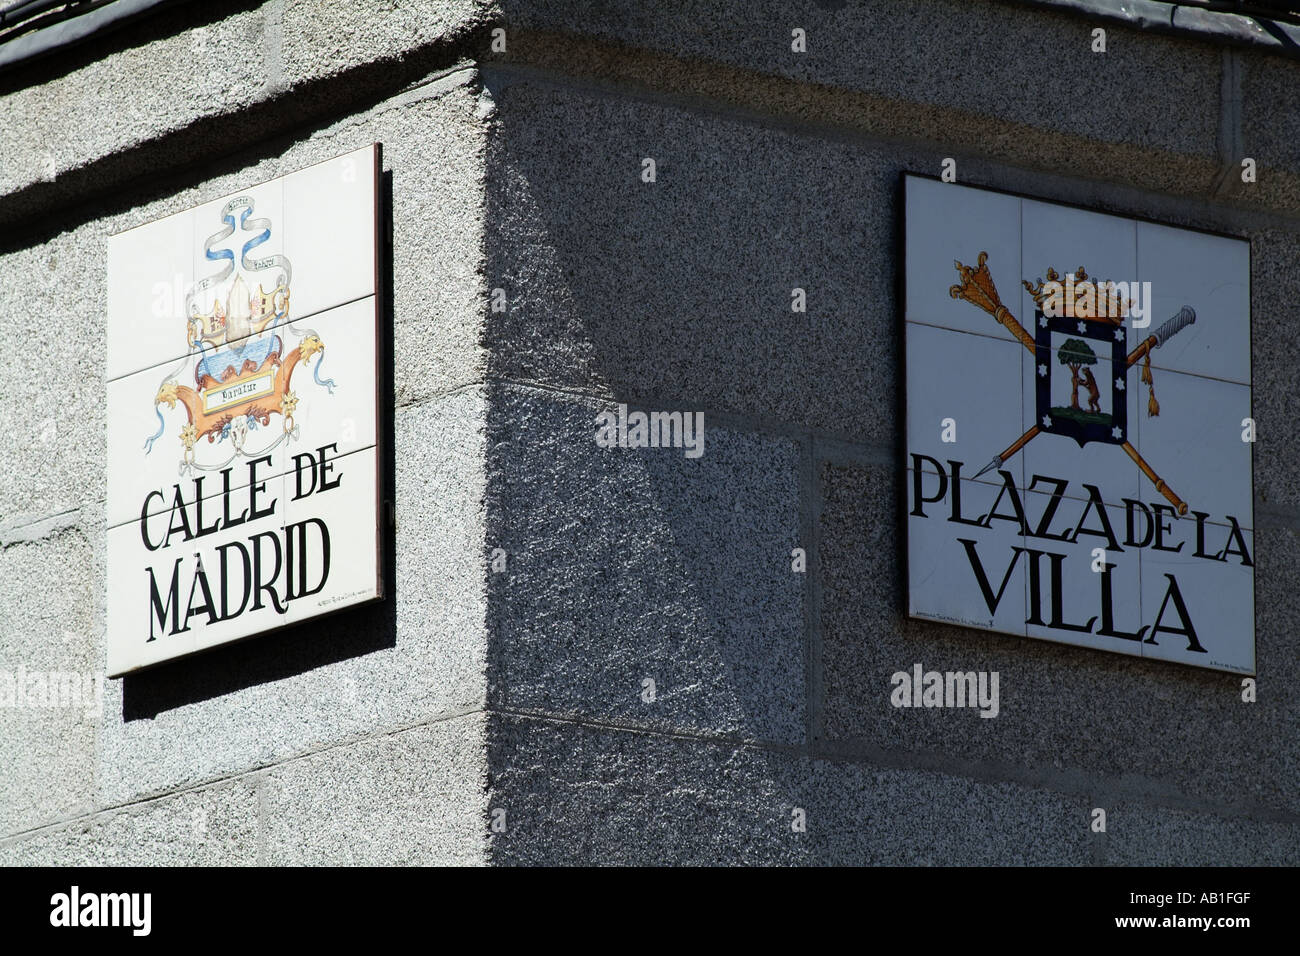 Spanish street name made up of ceramic tiles spain europe eu spanish street name made up of ceramic tiles spain europe eu dailygadgetfo Gallery